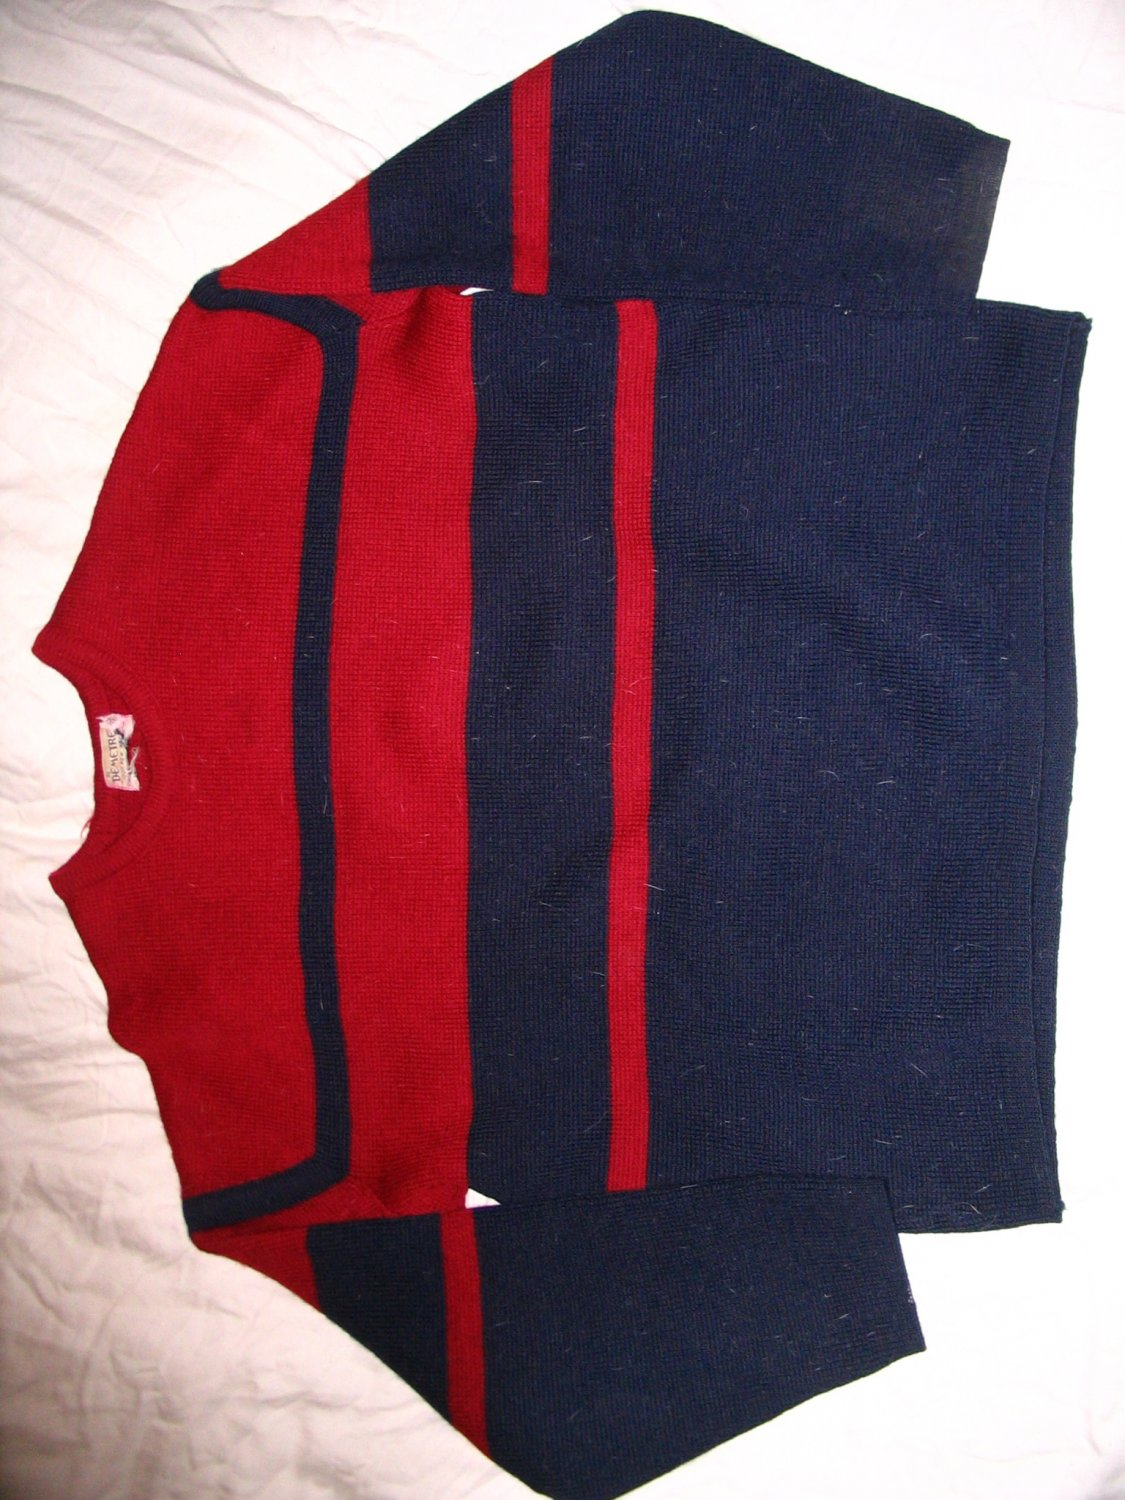 Demetre 100% Wool Sweater Red Navy Demeter